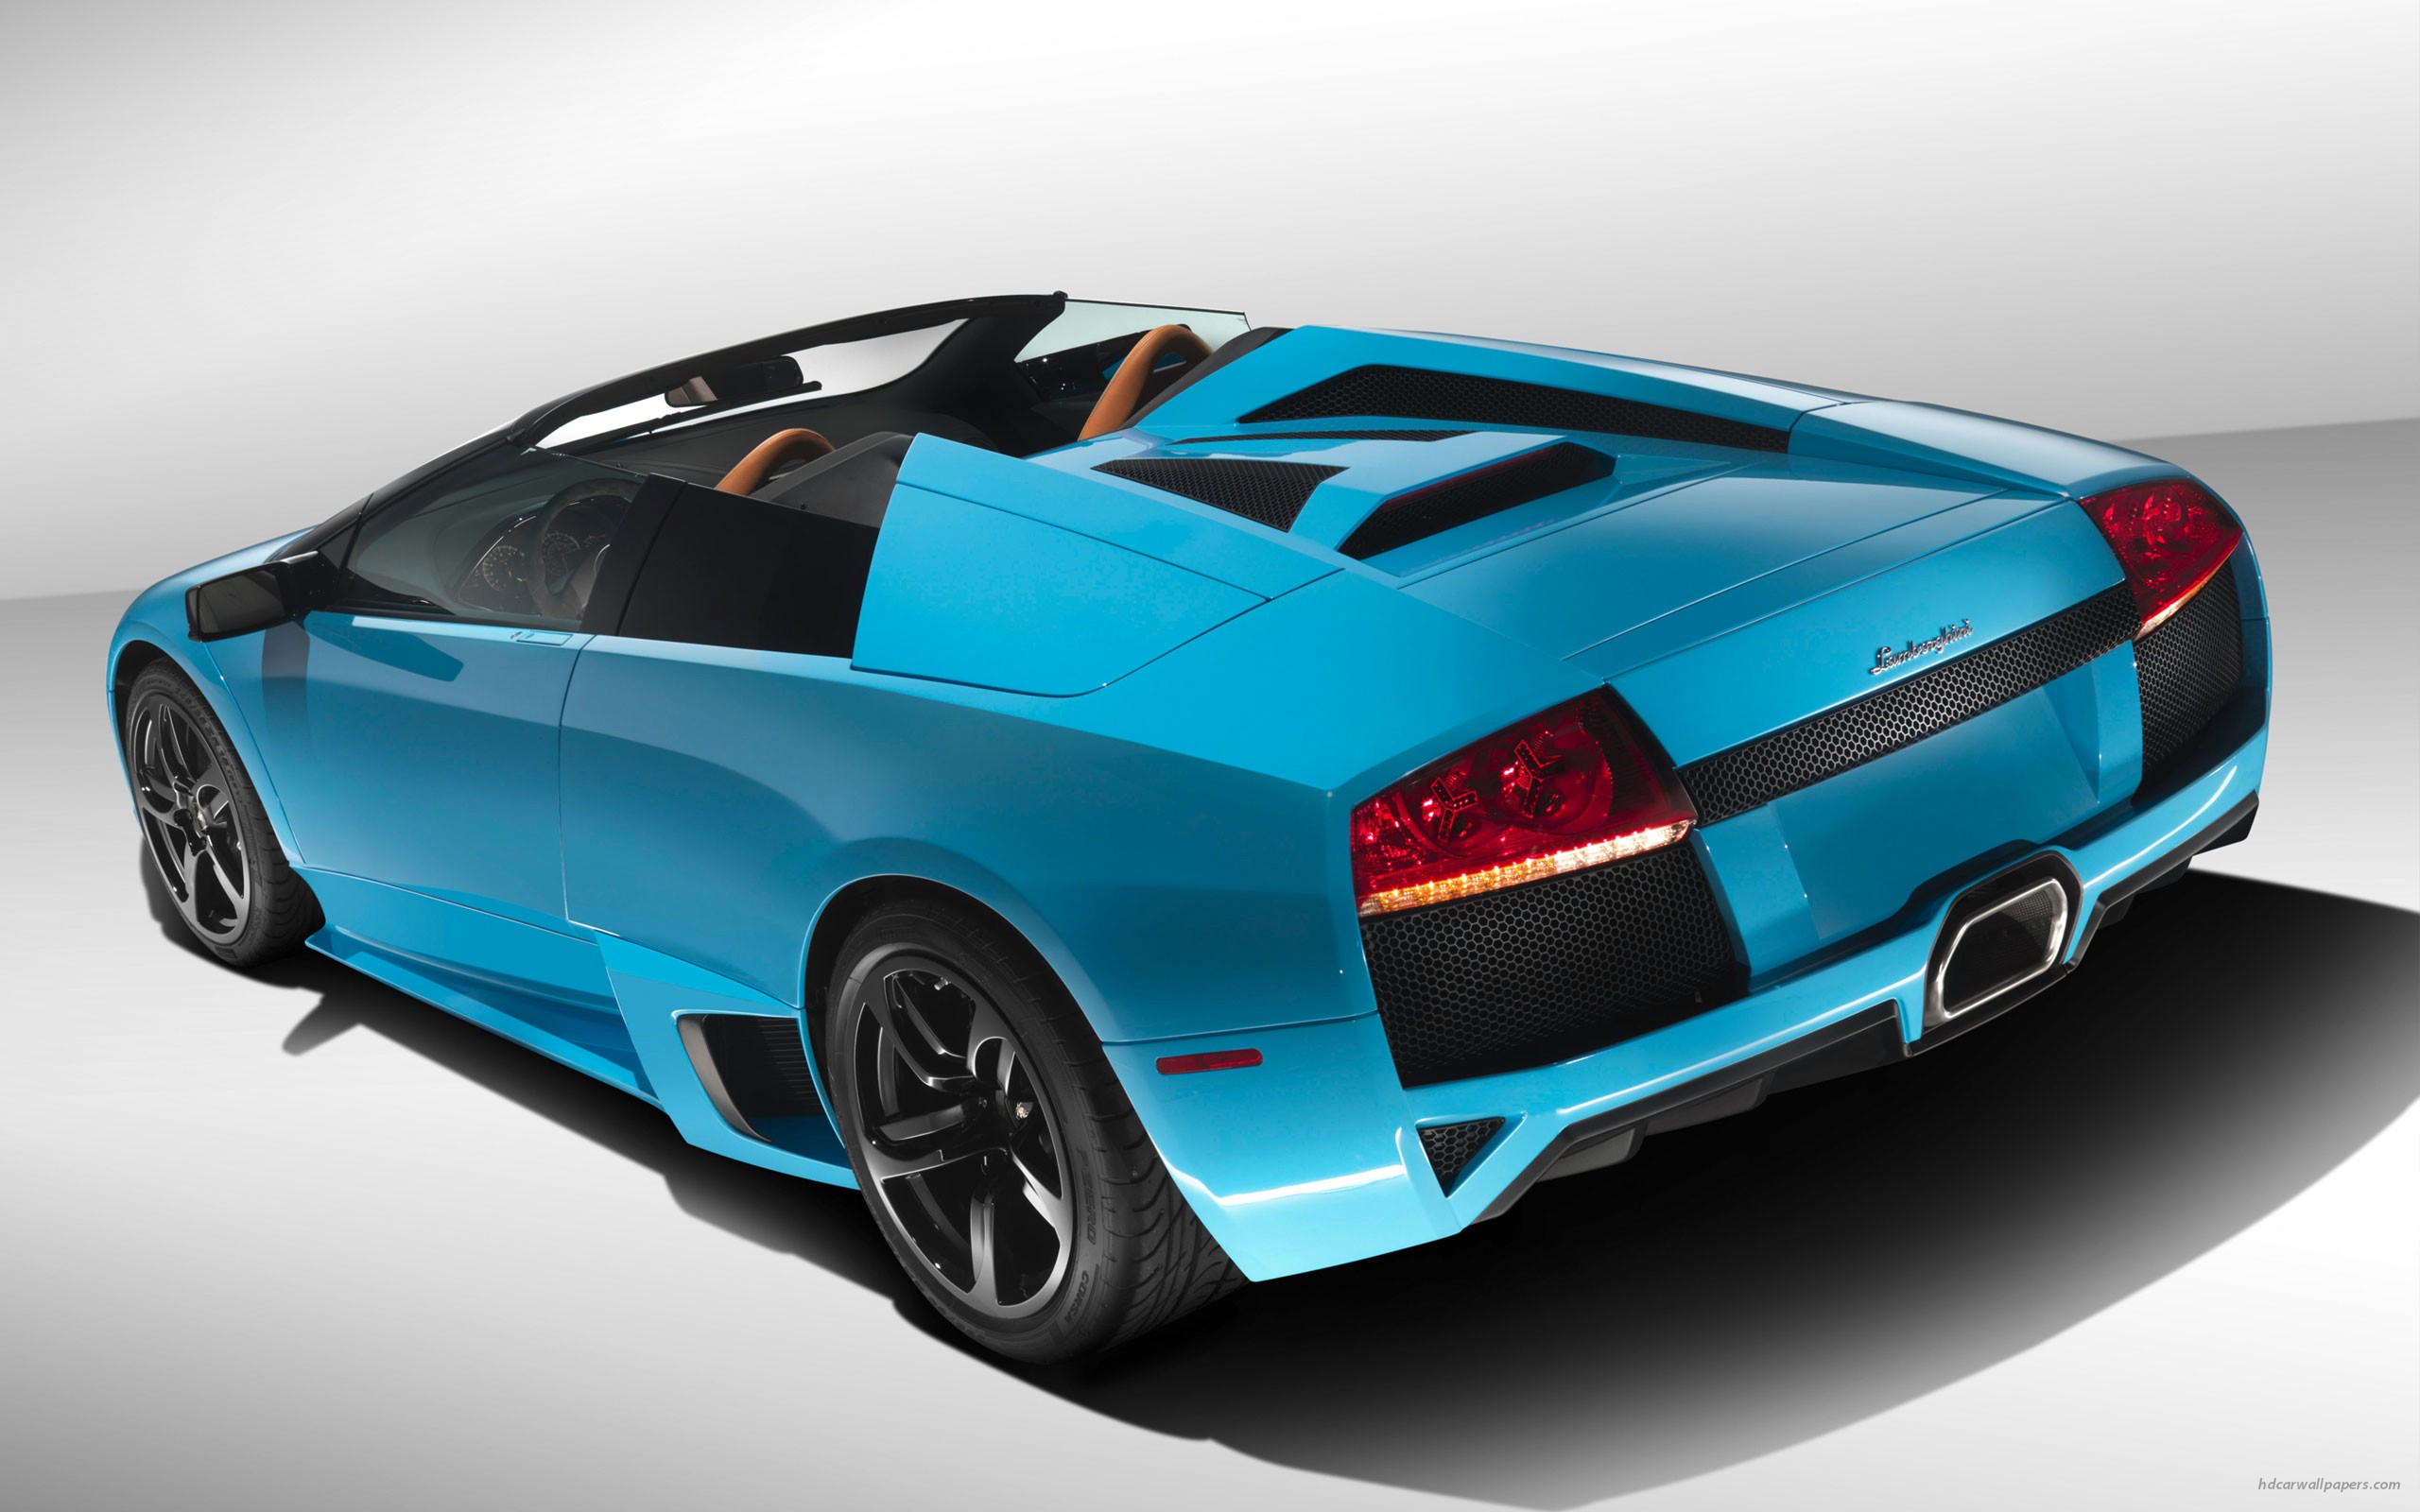 2010 lamborghini murcielago wallpaper 2010 Lamborghini Murcielago Widescreen Wallpapers | HD Wallpapers